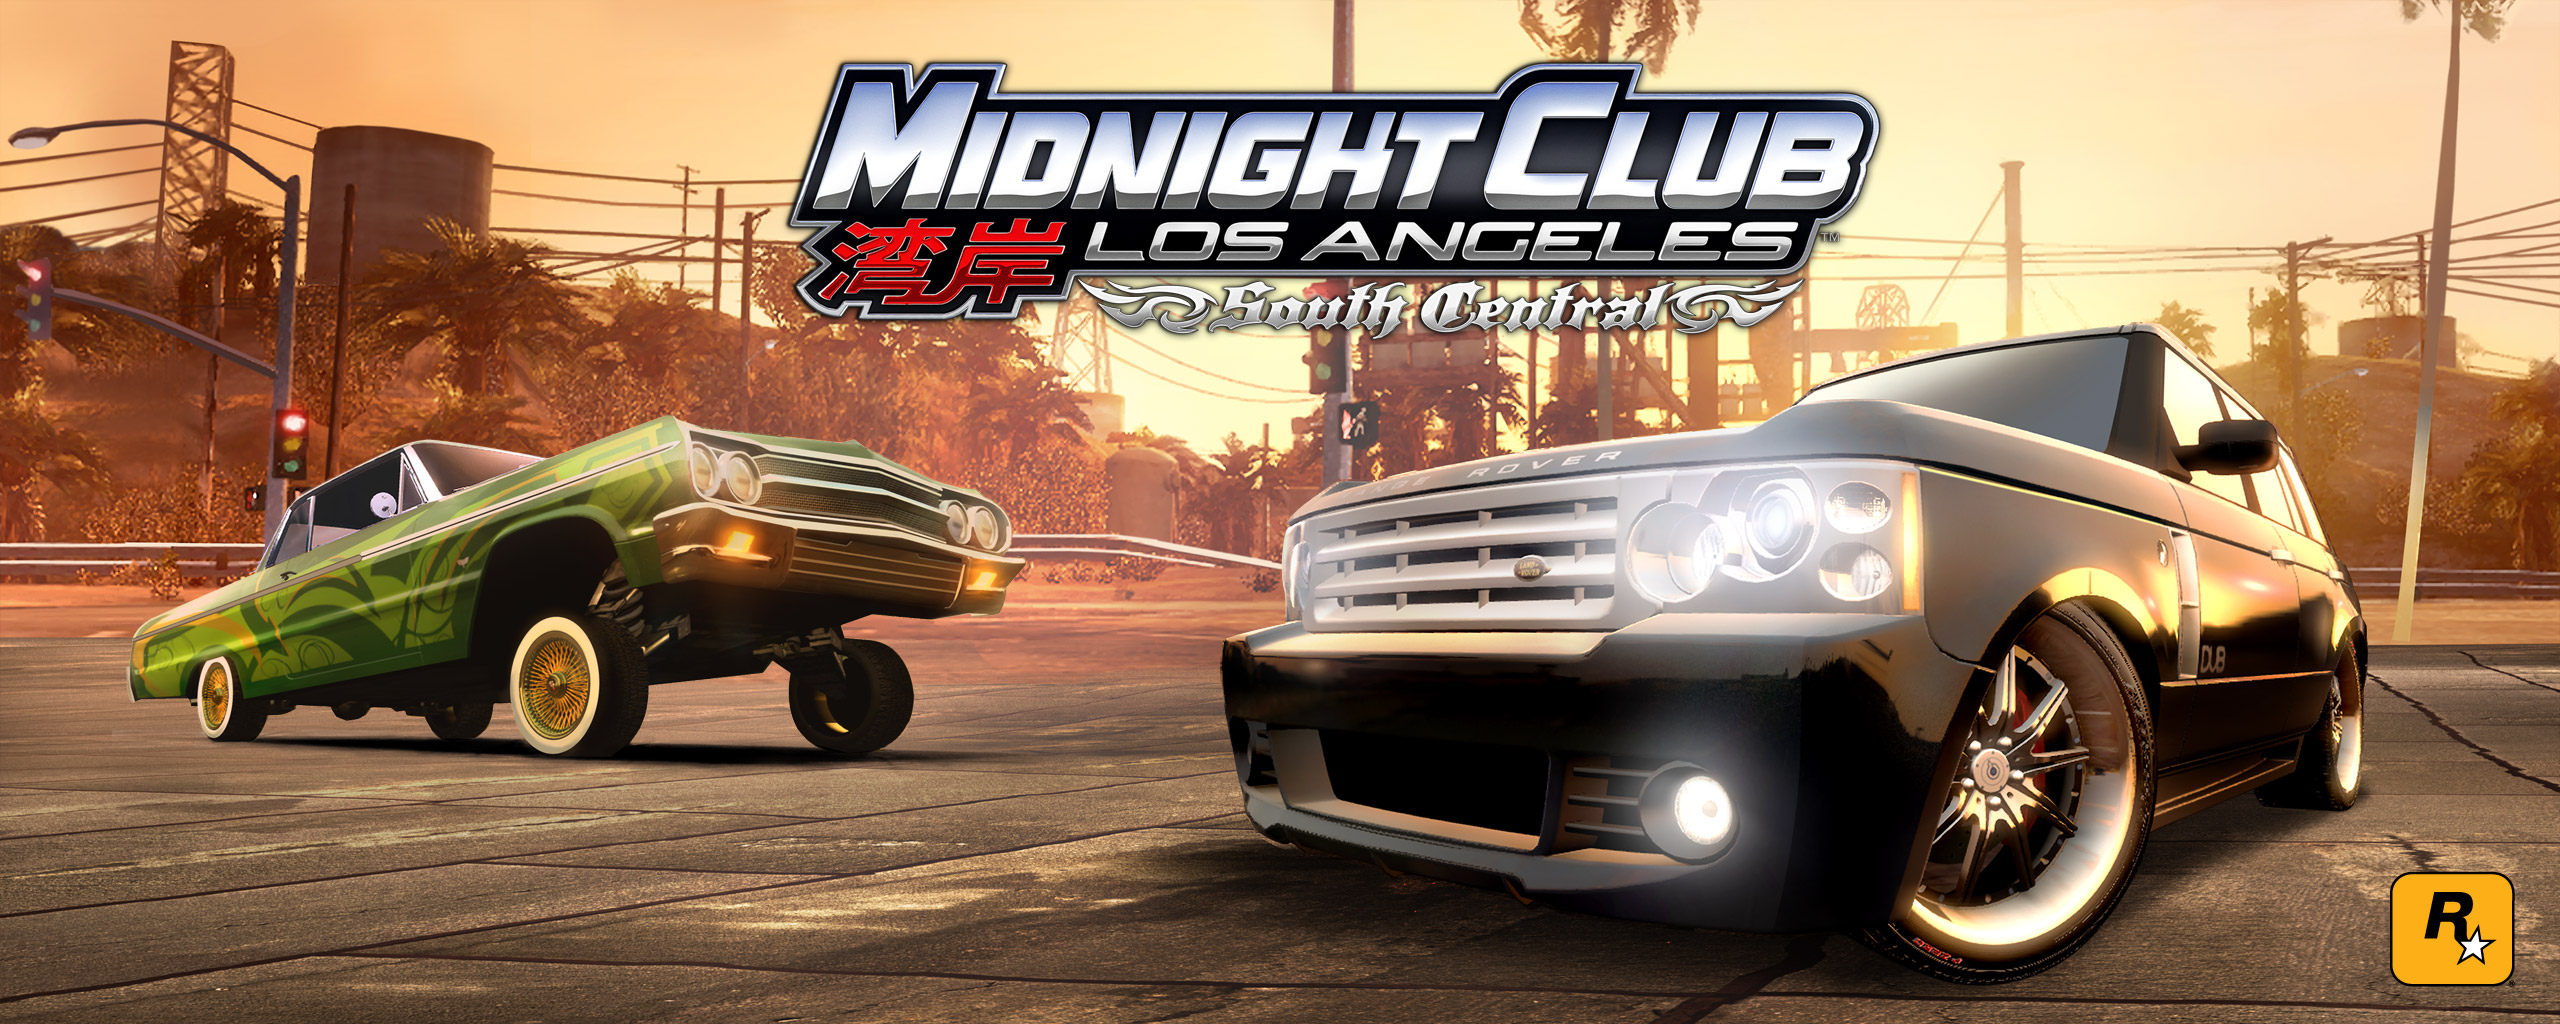 midnight club los angeles wallpaper 4 jeux vid o wallpapers directory. Black Bedroom Furniture Sets. Home Design Ideas